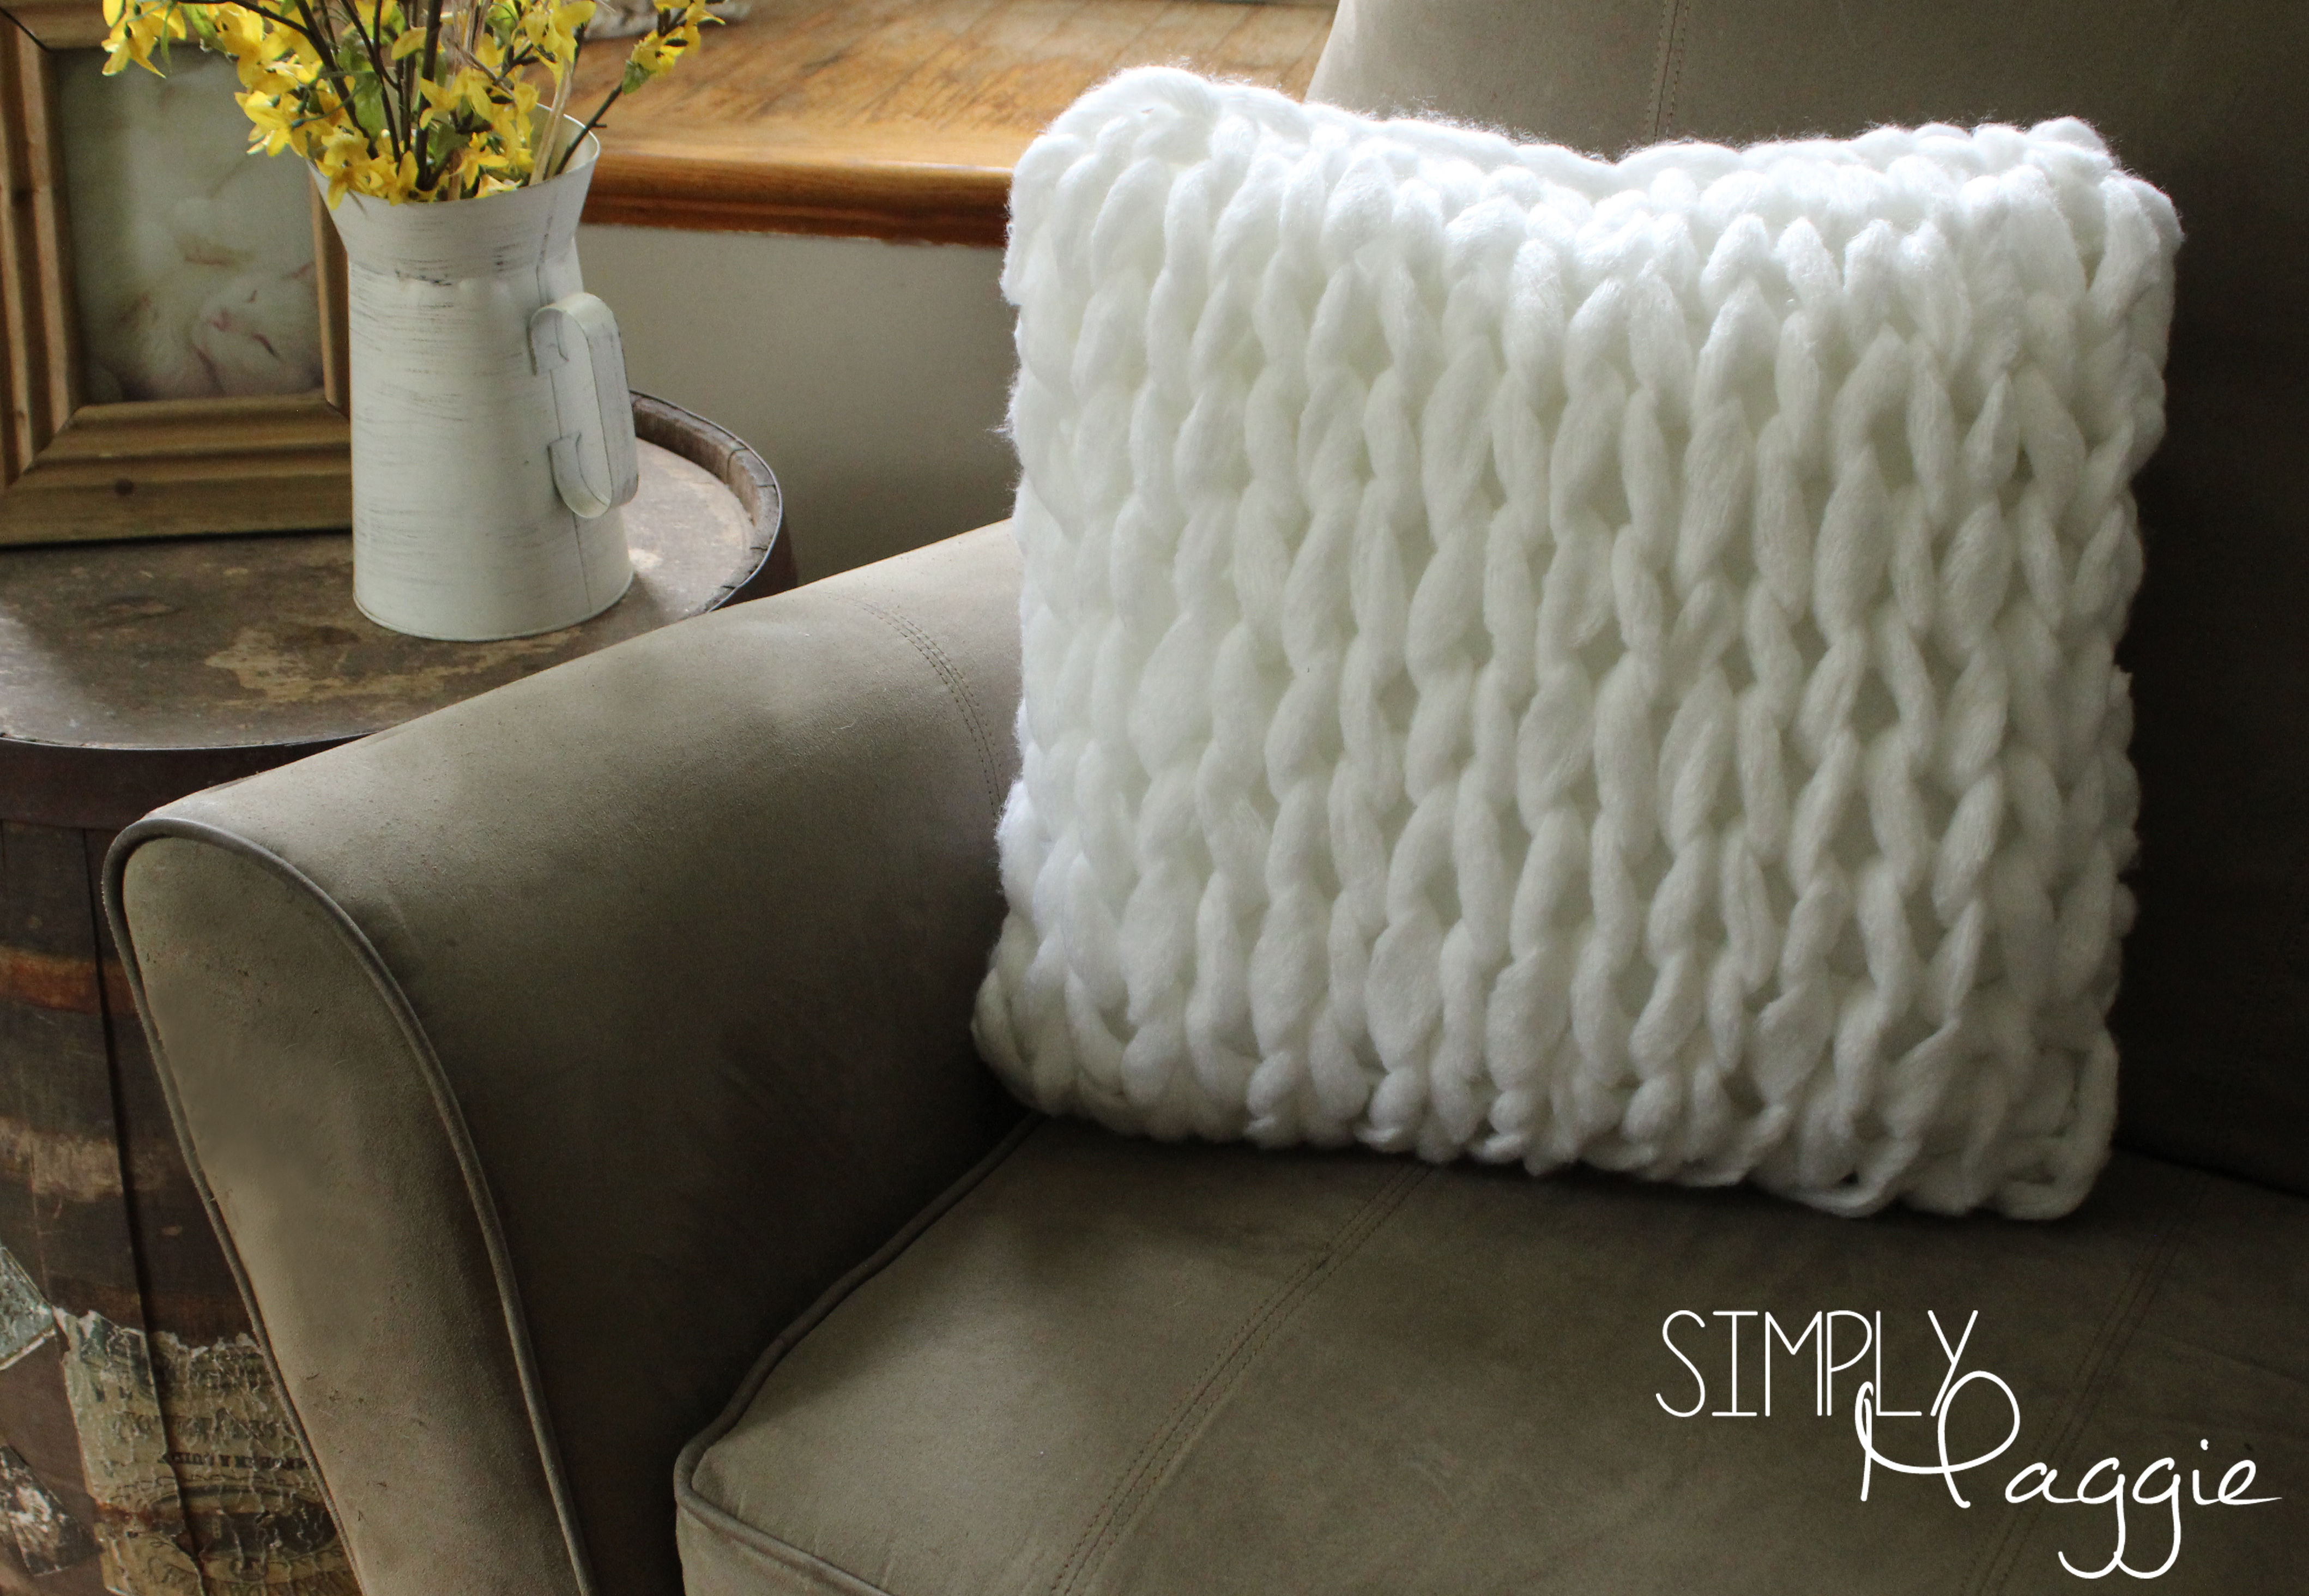 Hand Knitted Throw Patterns One Hour Arm Knit Pillow Pattern Simply Maggie Simplymaggie